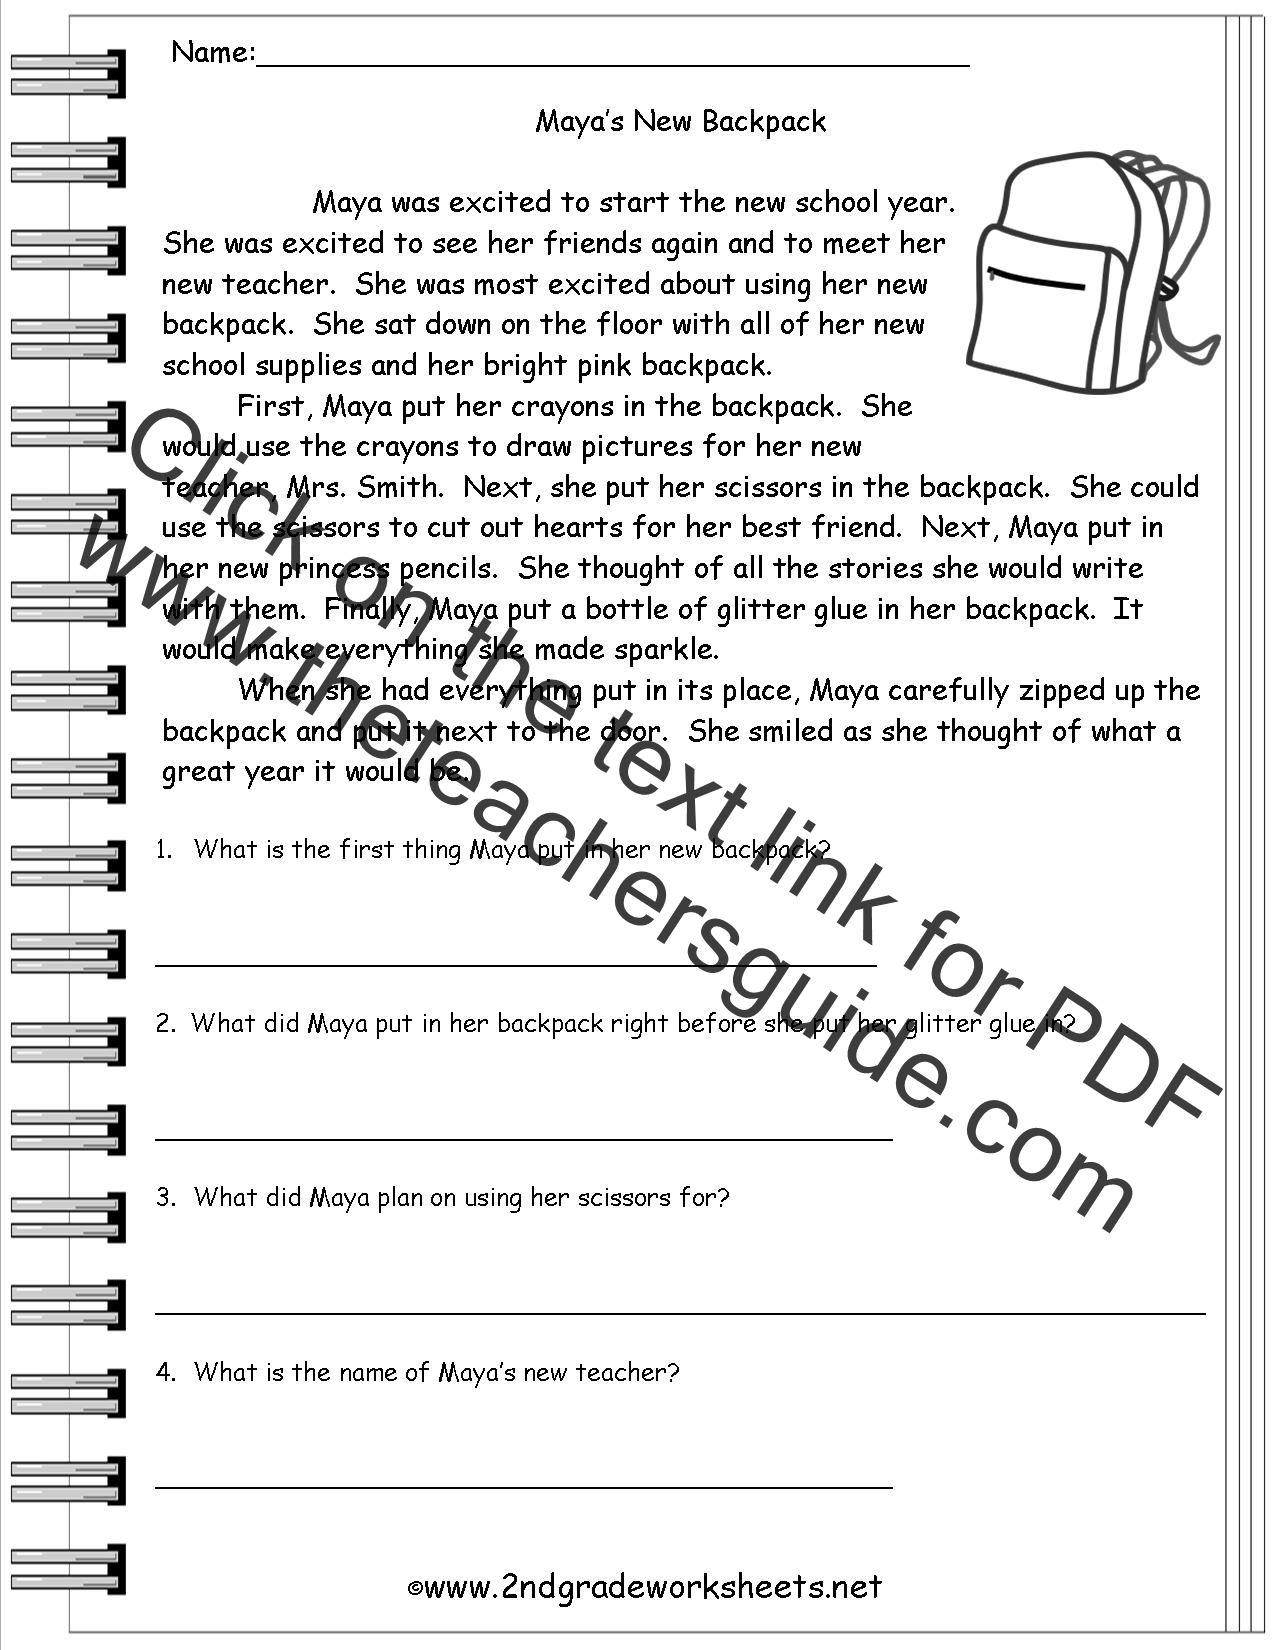 Worksheets 4th Grade Reading Worksheets reading worksheeets worksheets